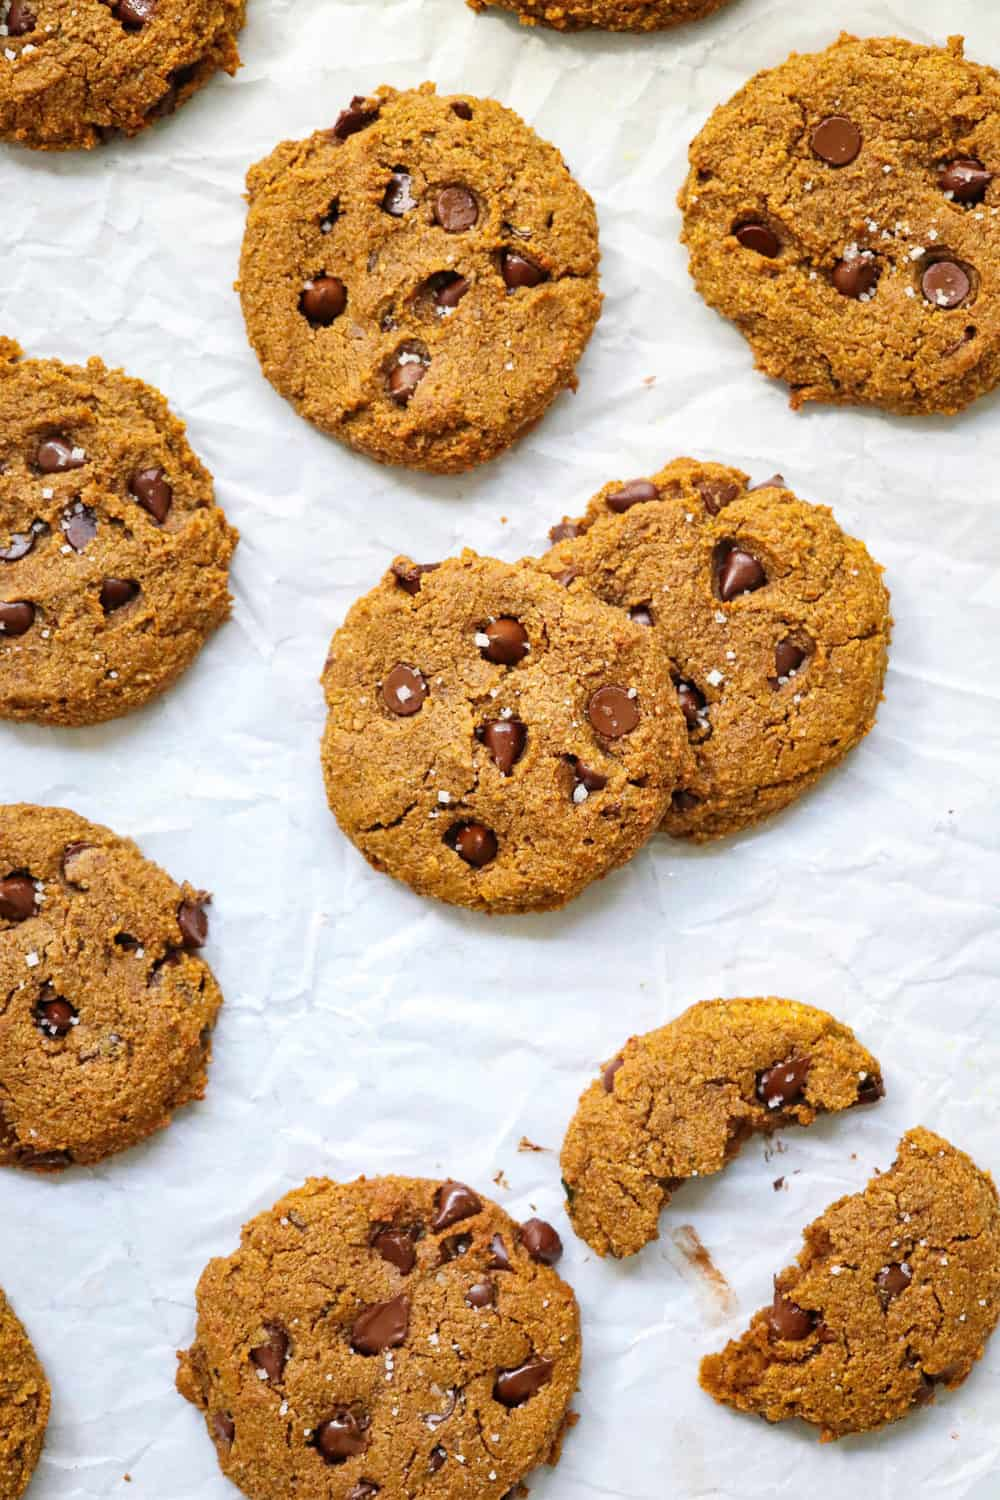 Pumpkin cookies with chocolate chips in them scattered on white parchment paper